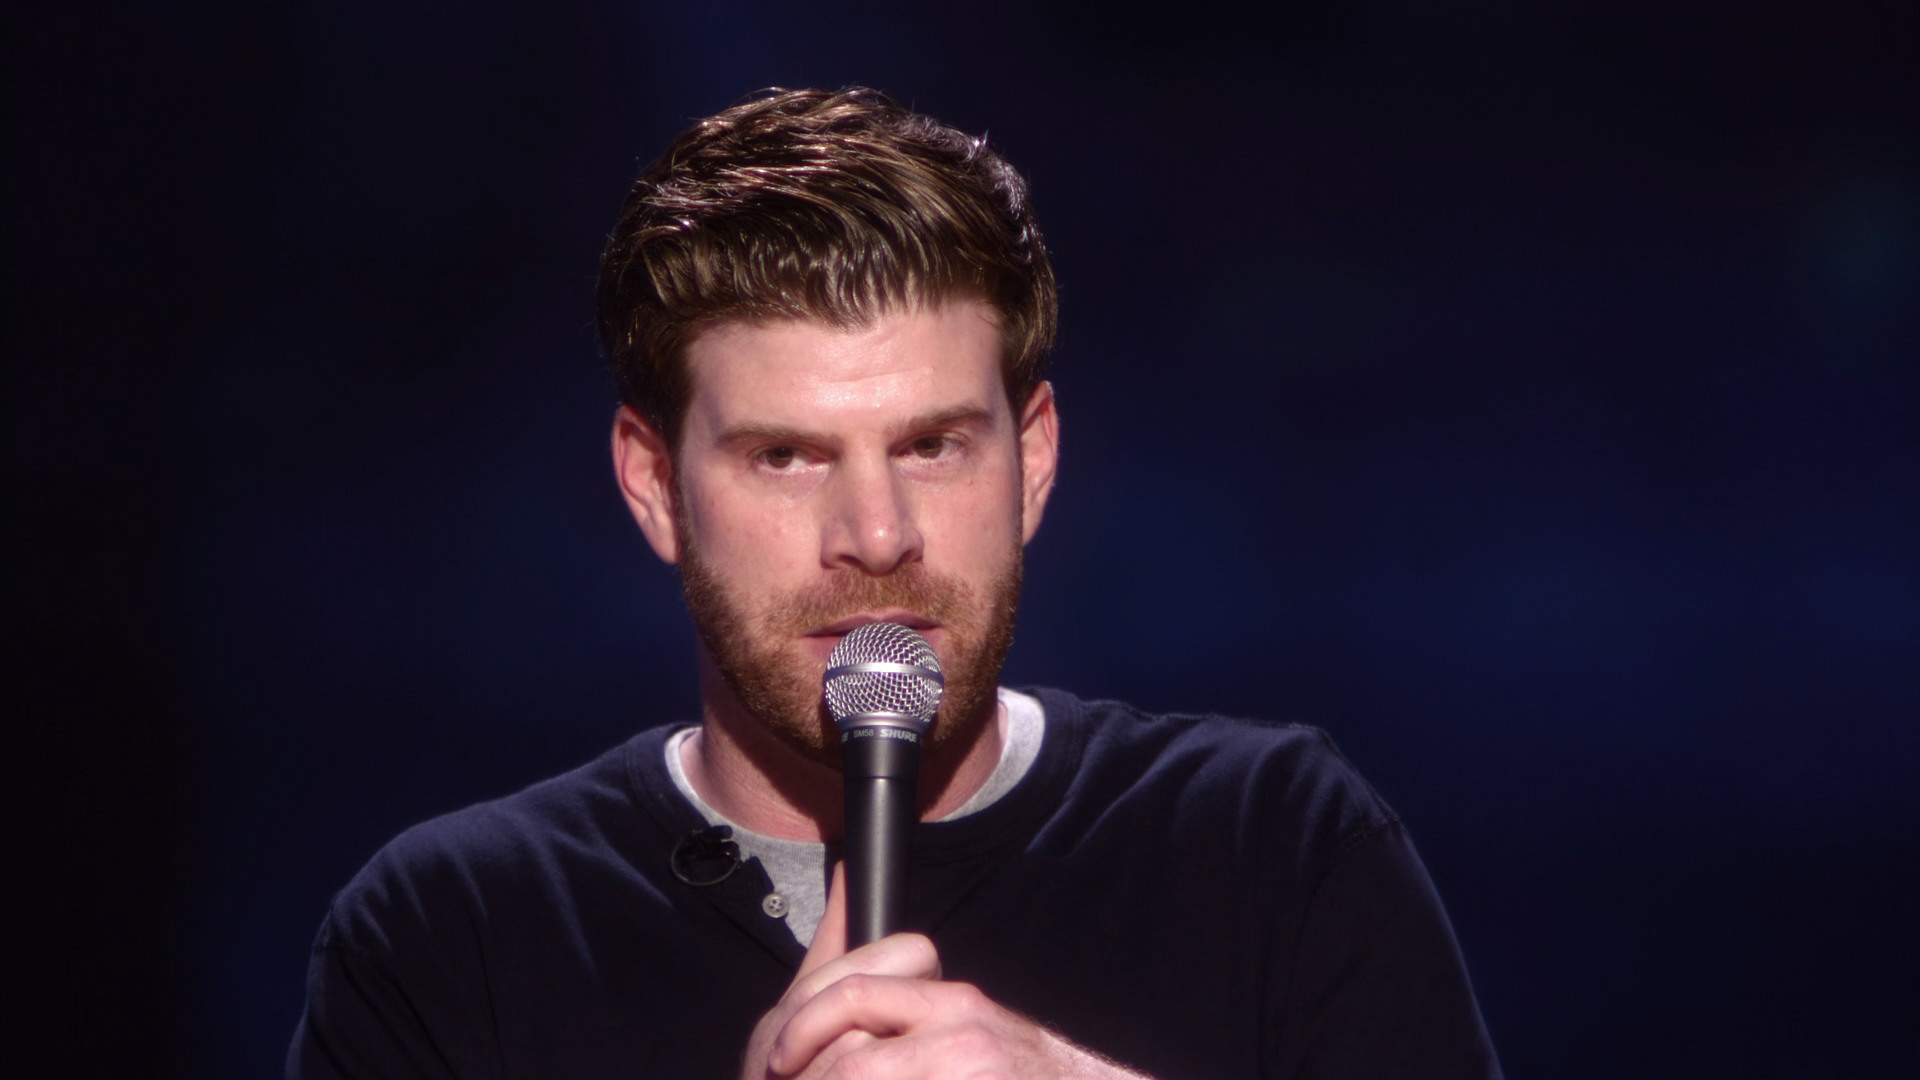 Uncensored - Steve Rannazzisi - Pot Cookie Before Takeoff Pt. 2